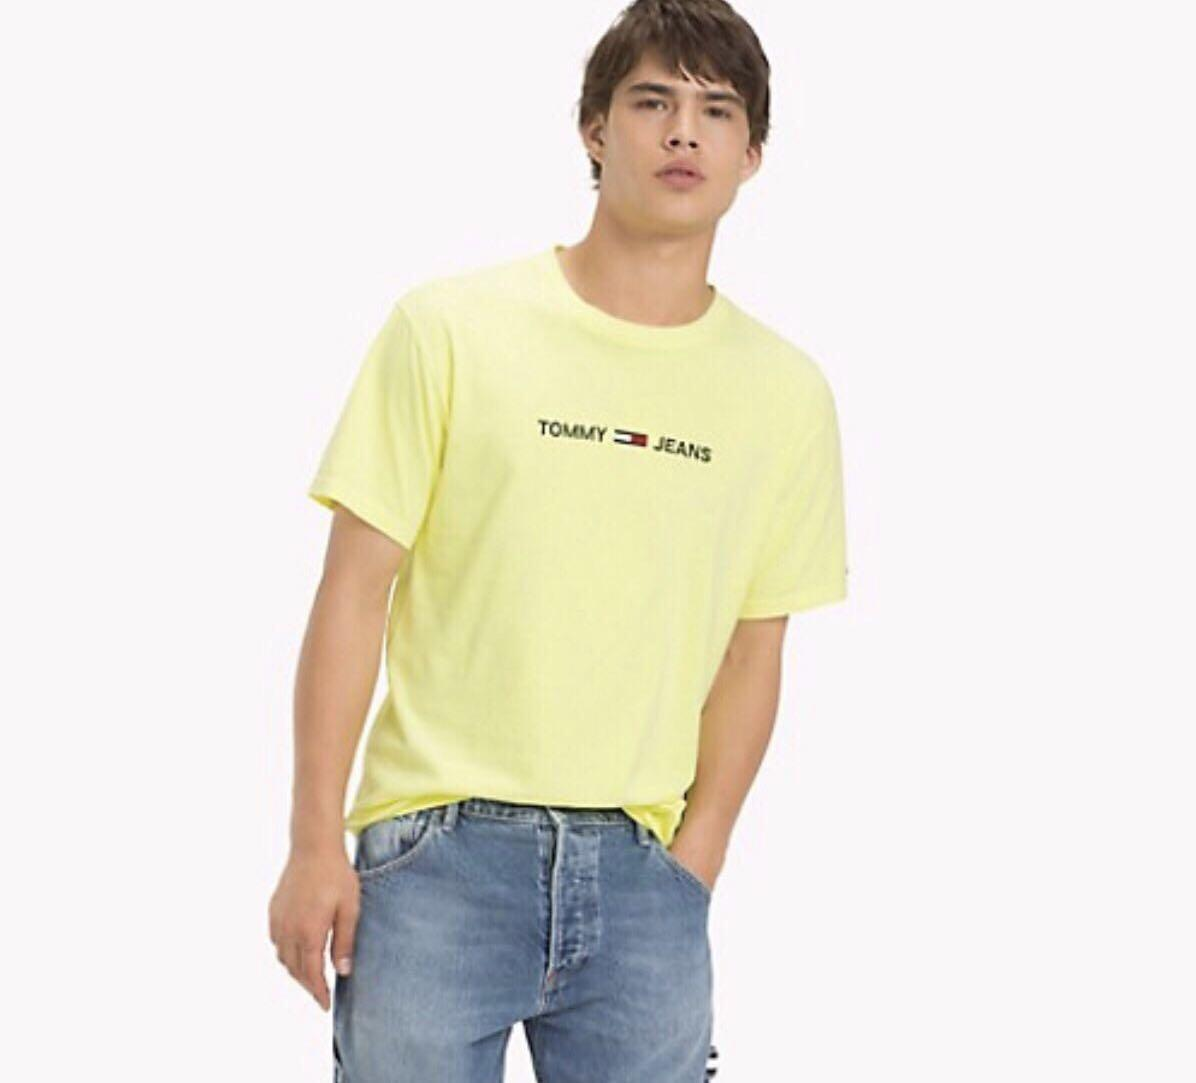 🚨CLEARANCE🚨Tommy Jeans In Yellow